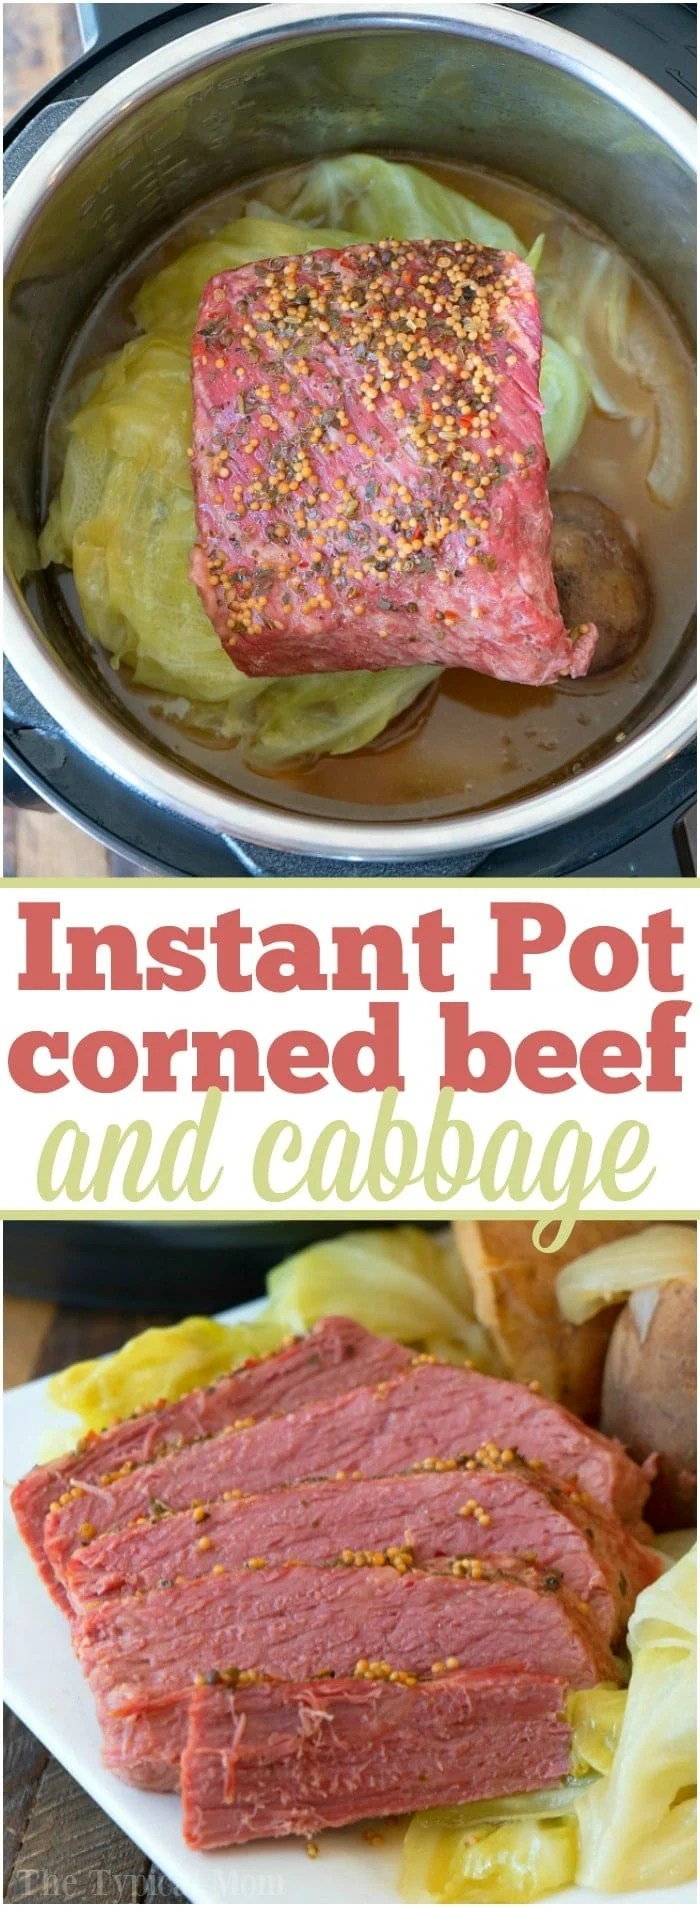 Easy Instant Pot Corned Beef and Cabbage Recipe + Video